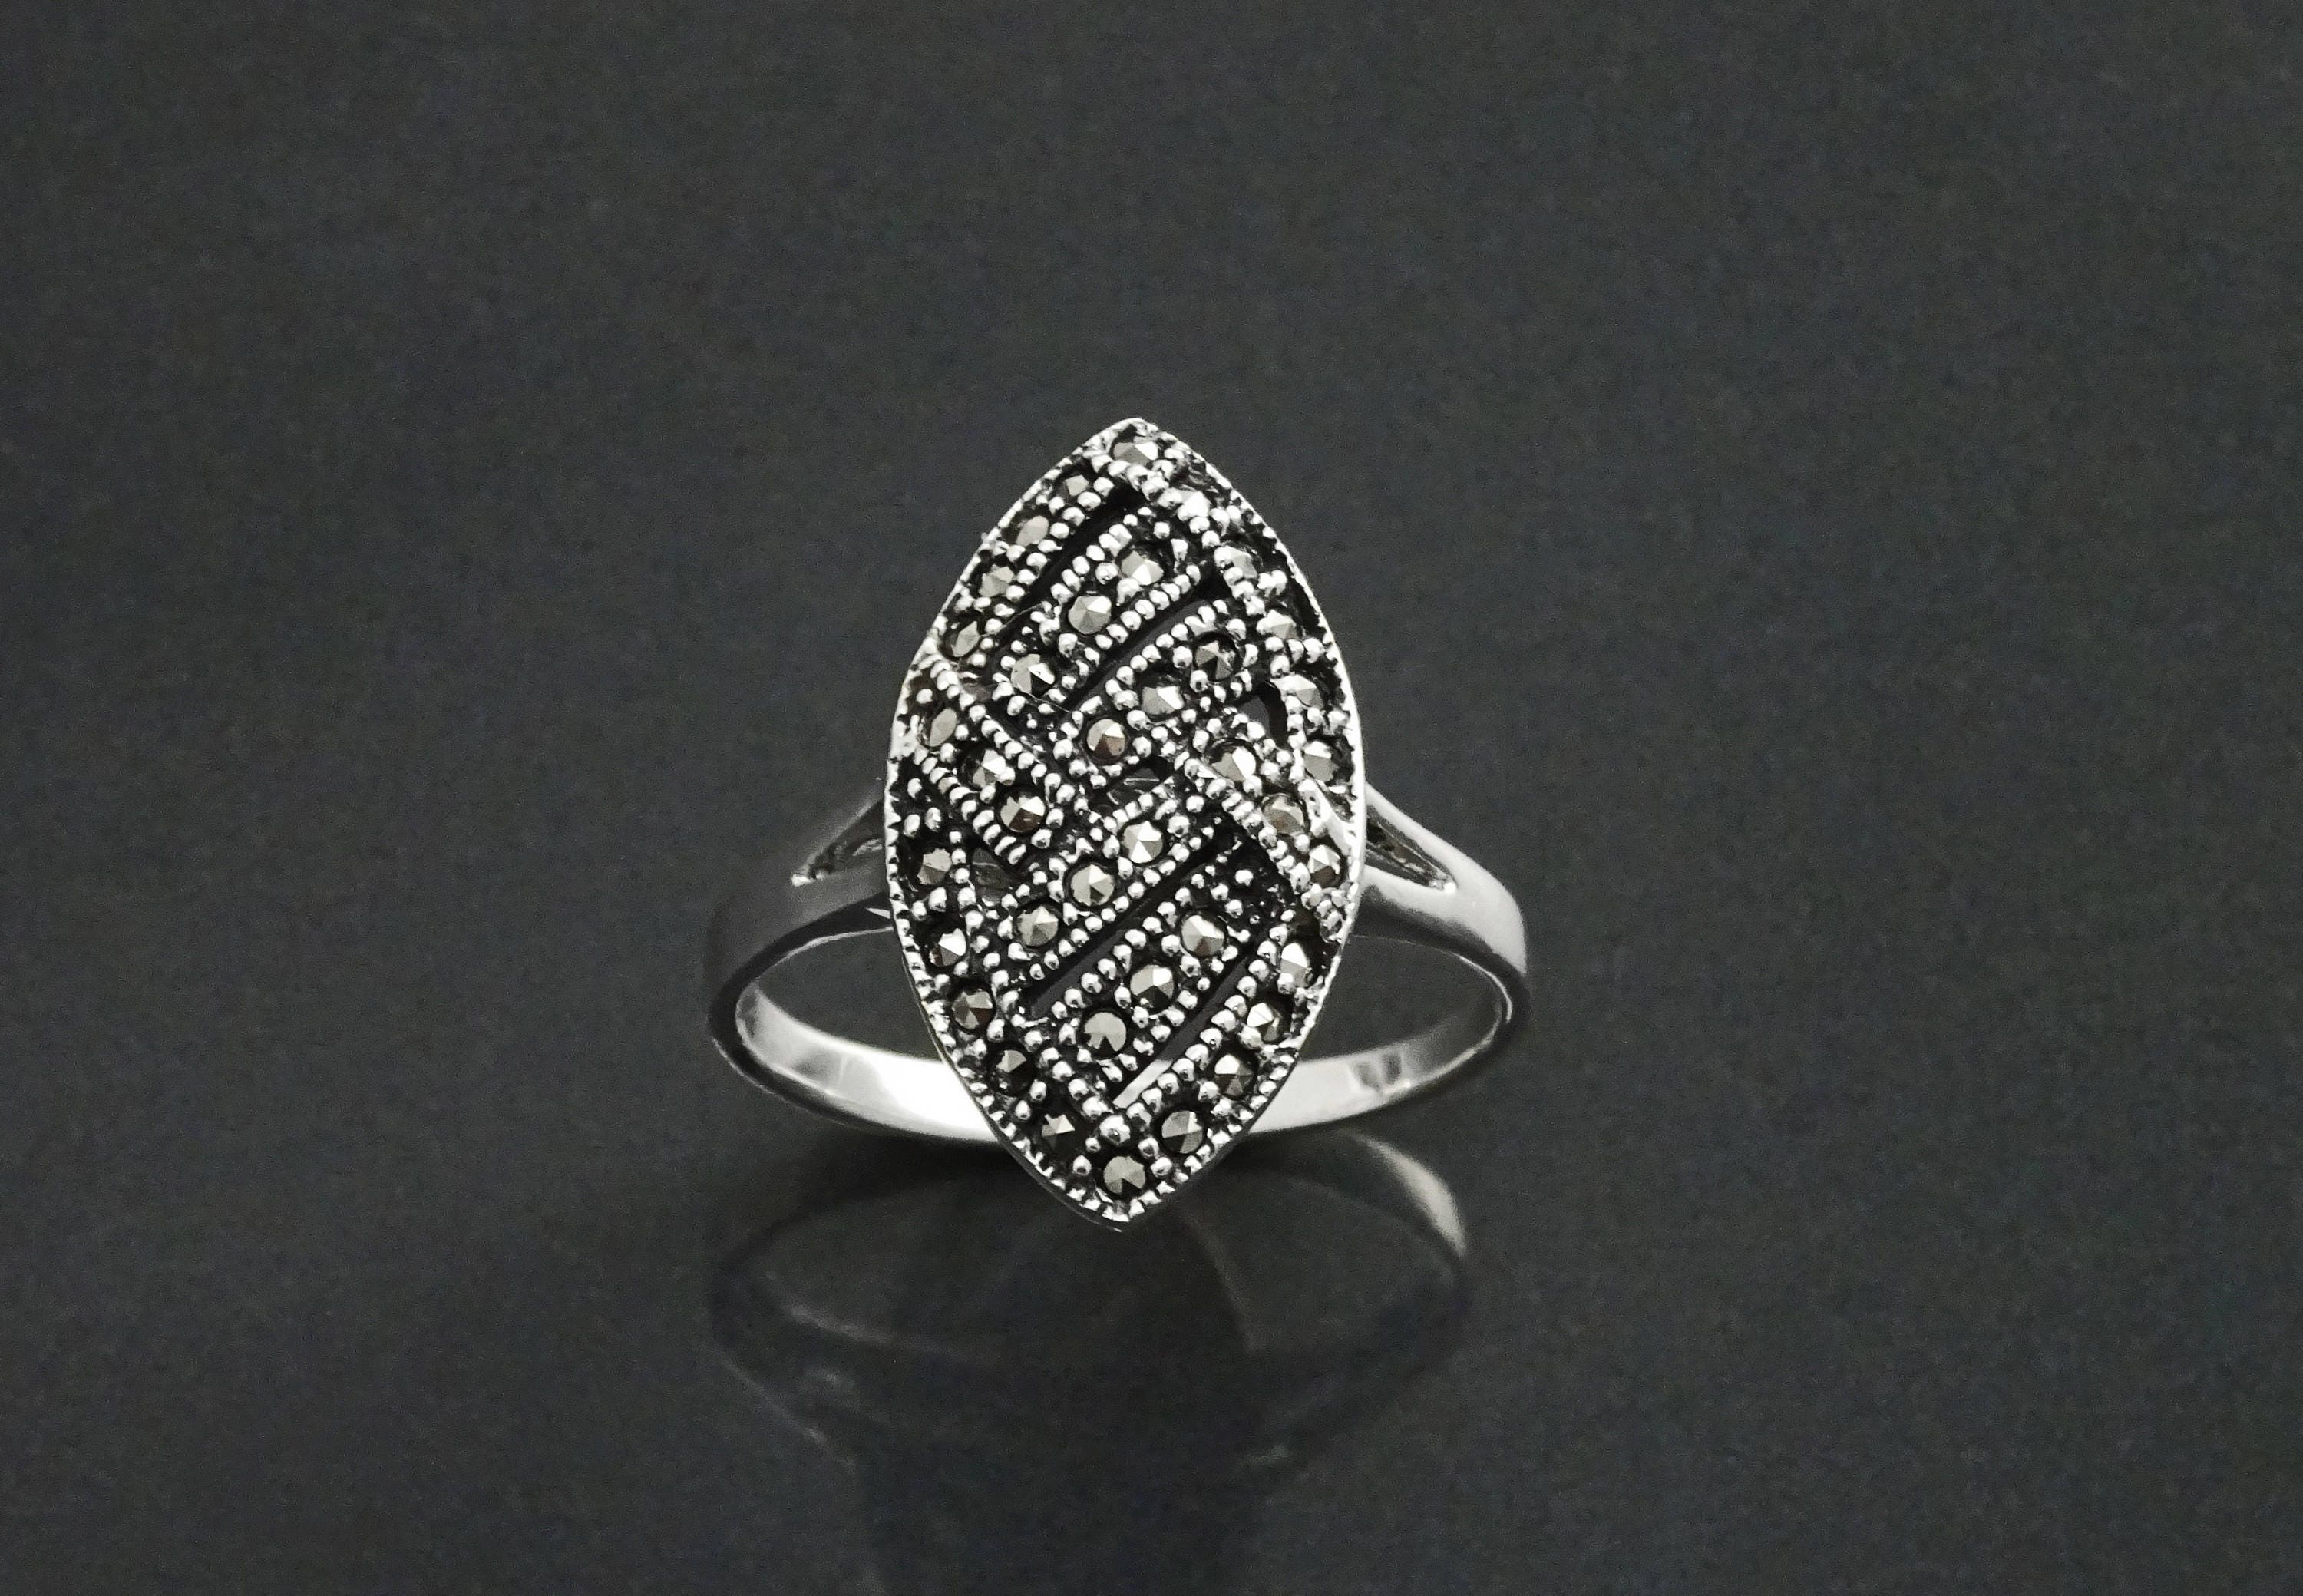 band wedding to mens marcasite gold ring starbursts rings carved preadored vintage with products